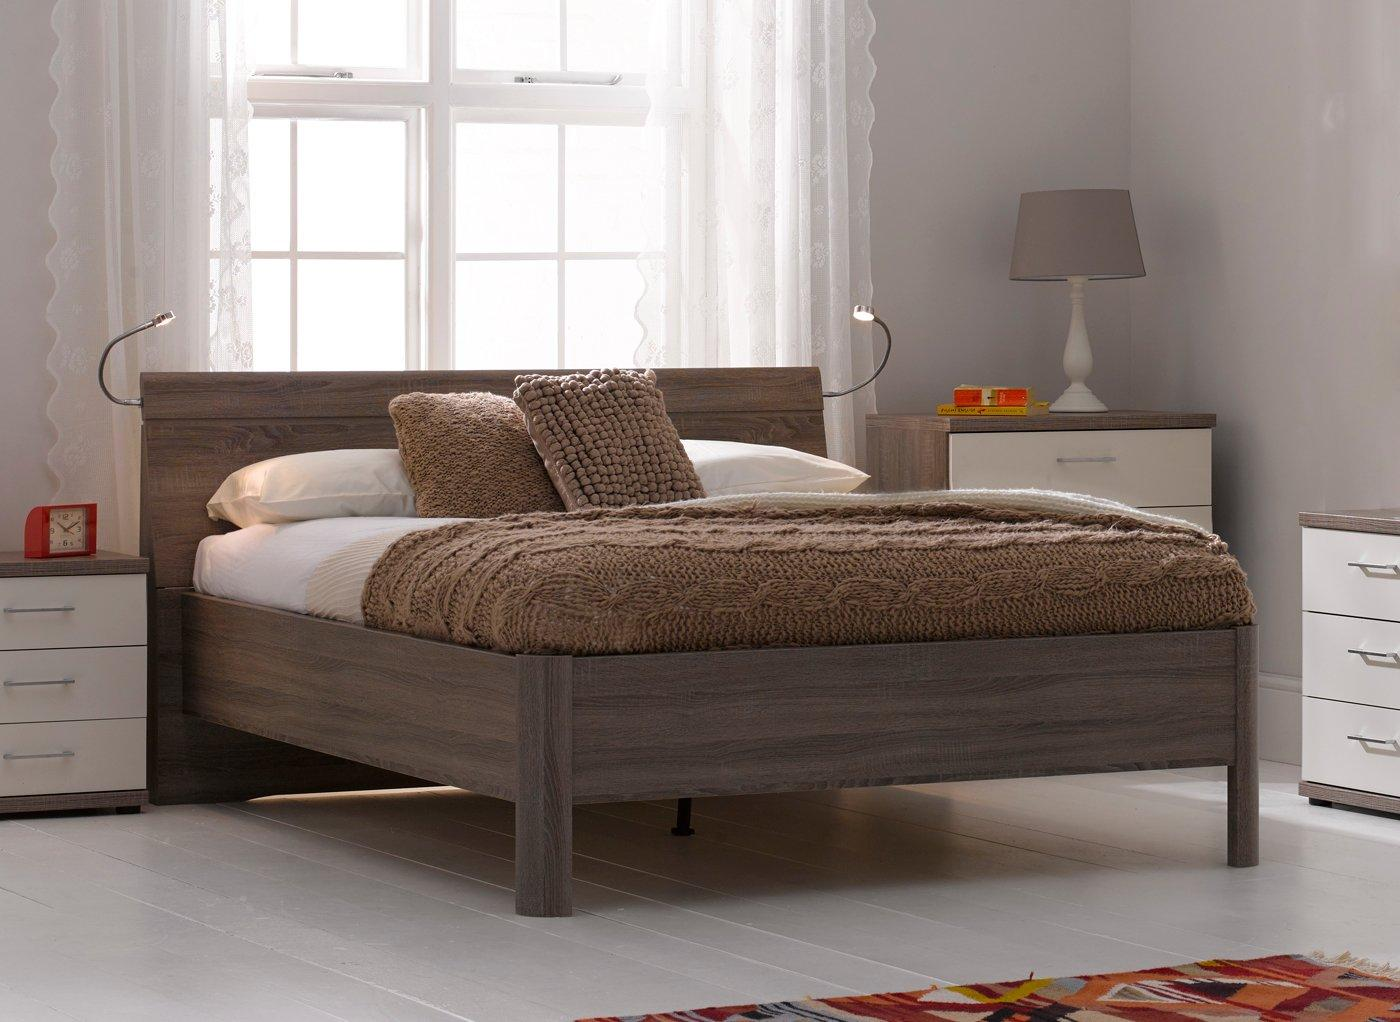 Melbourne Bed Frame